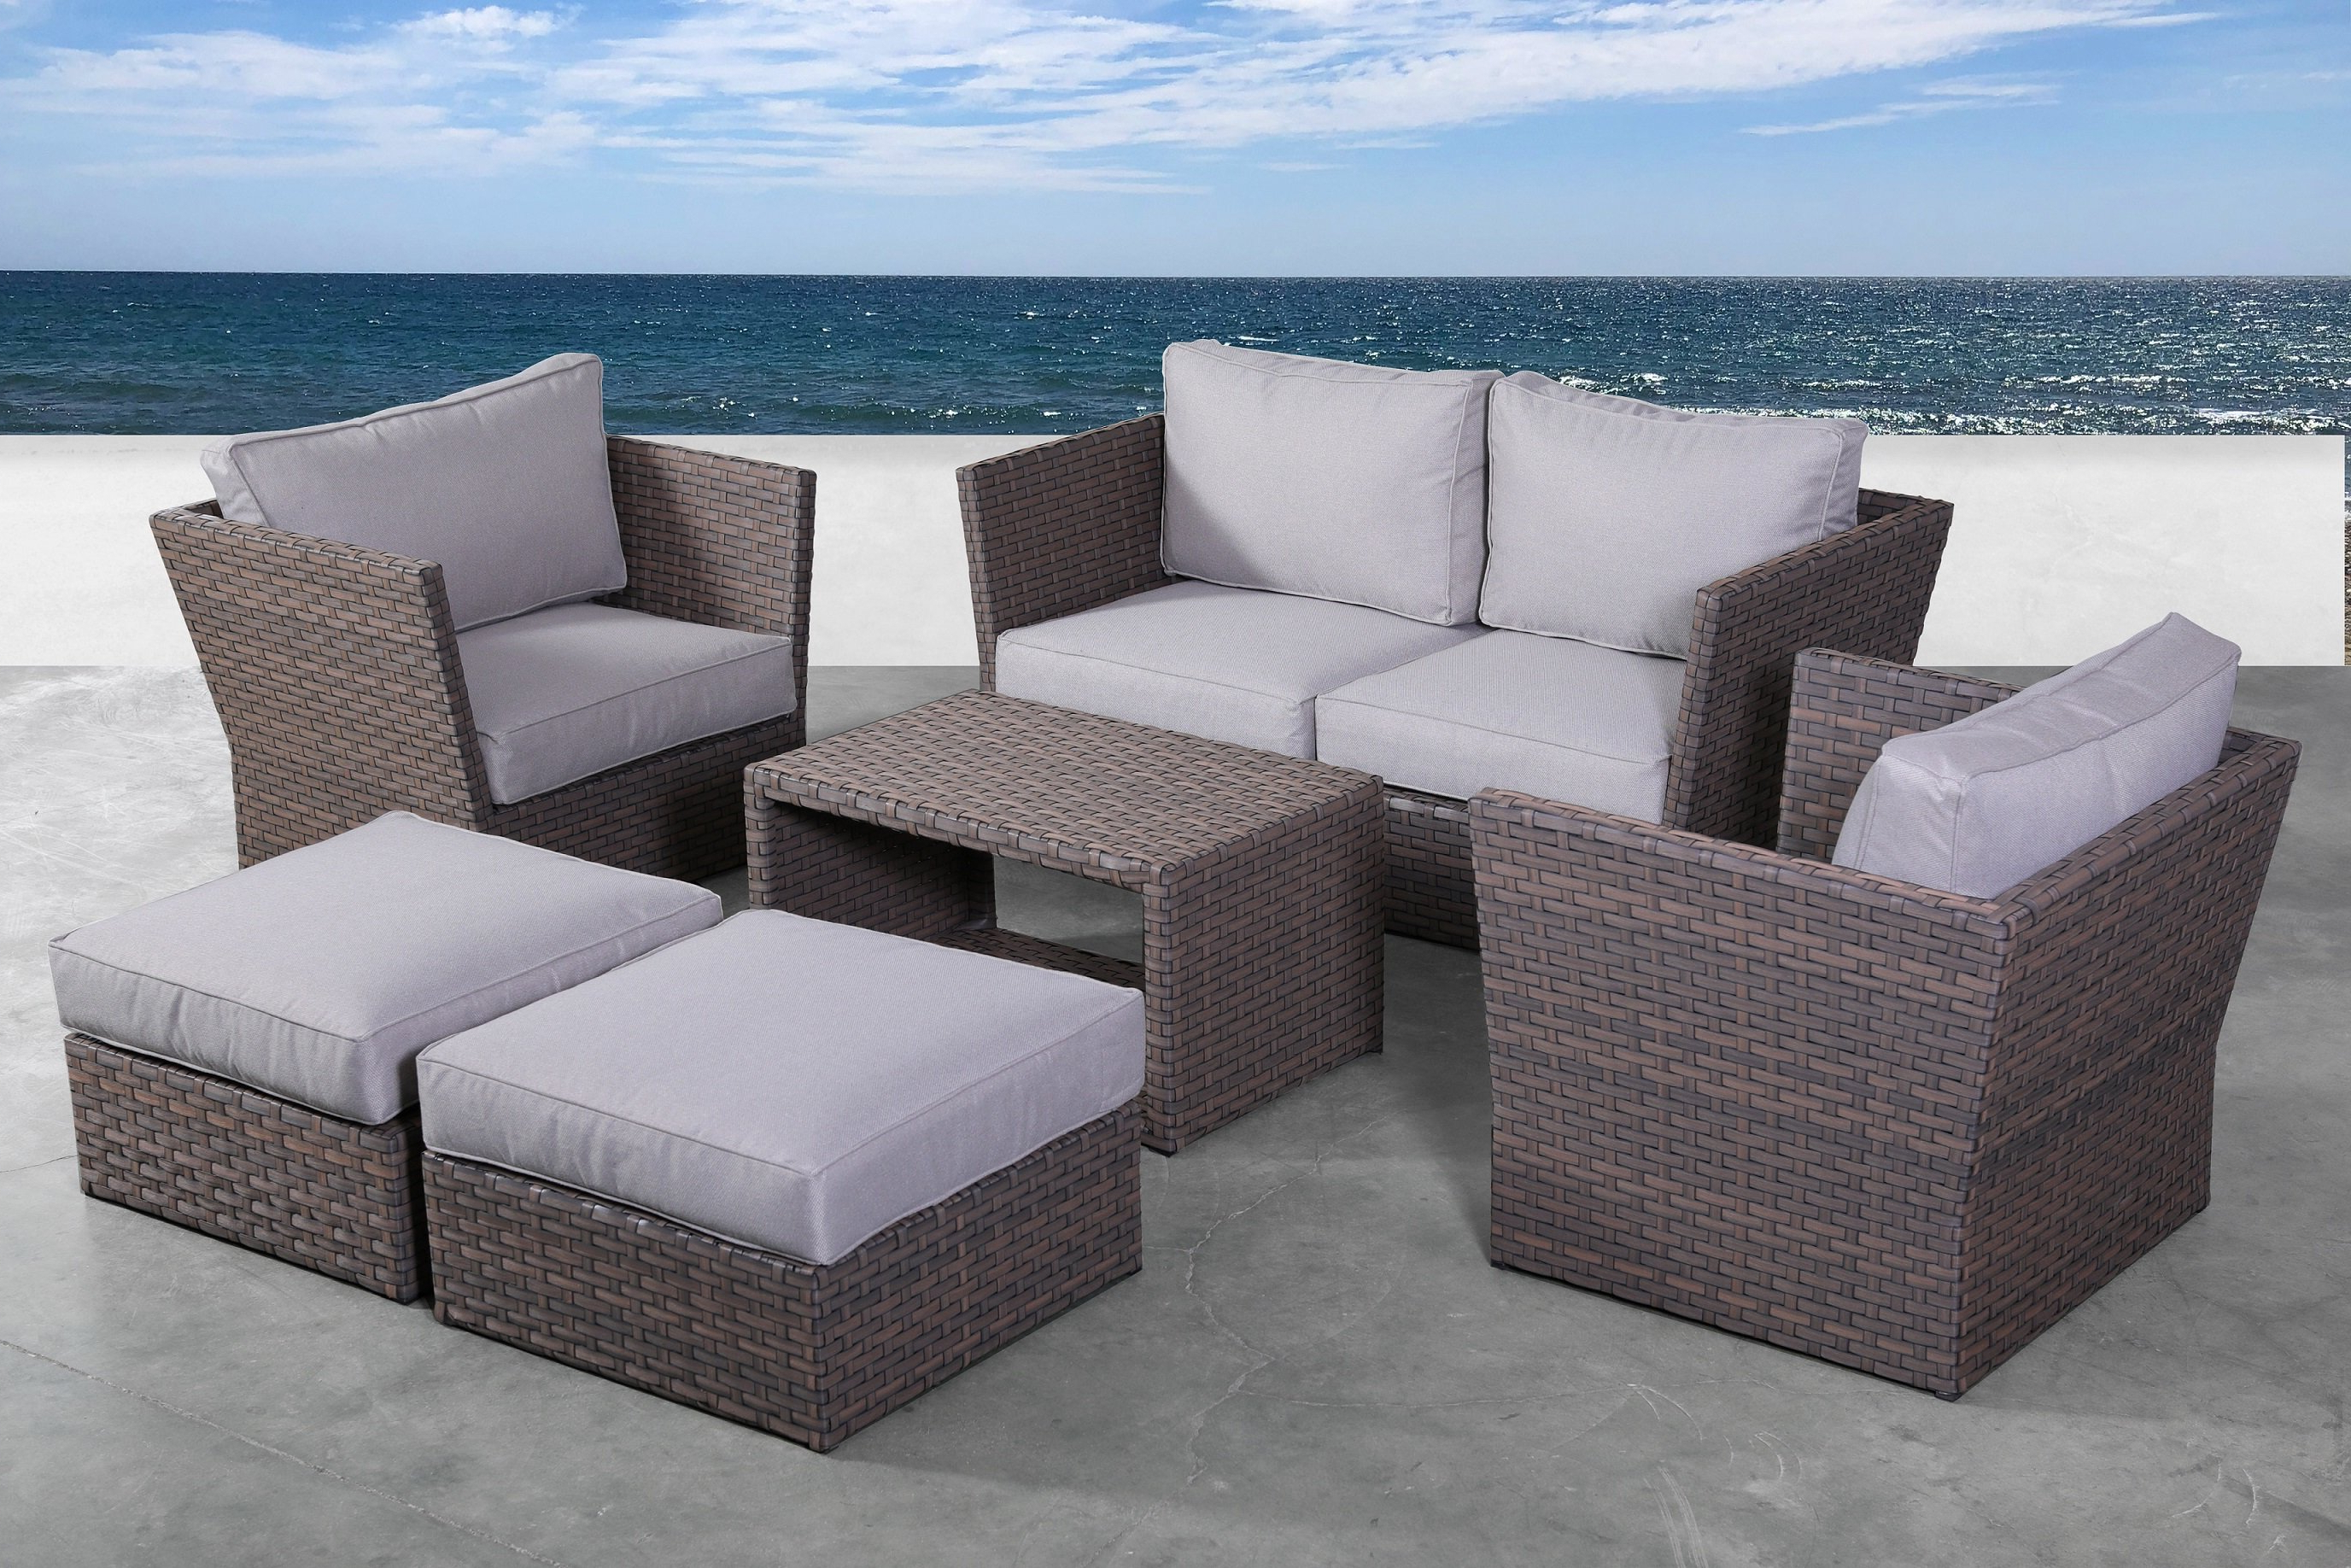 Cody Expandable Cocktail Tables Inside Famous Rosecliff Heights Cody 7 Piece Rattan Sectional Seating Group With (View 14 of 20)